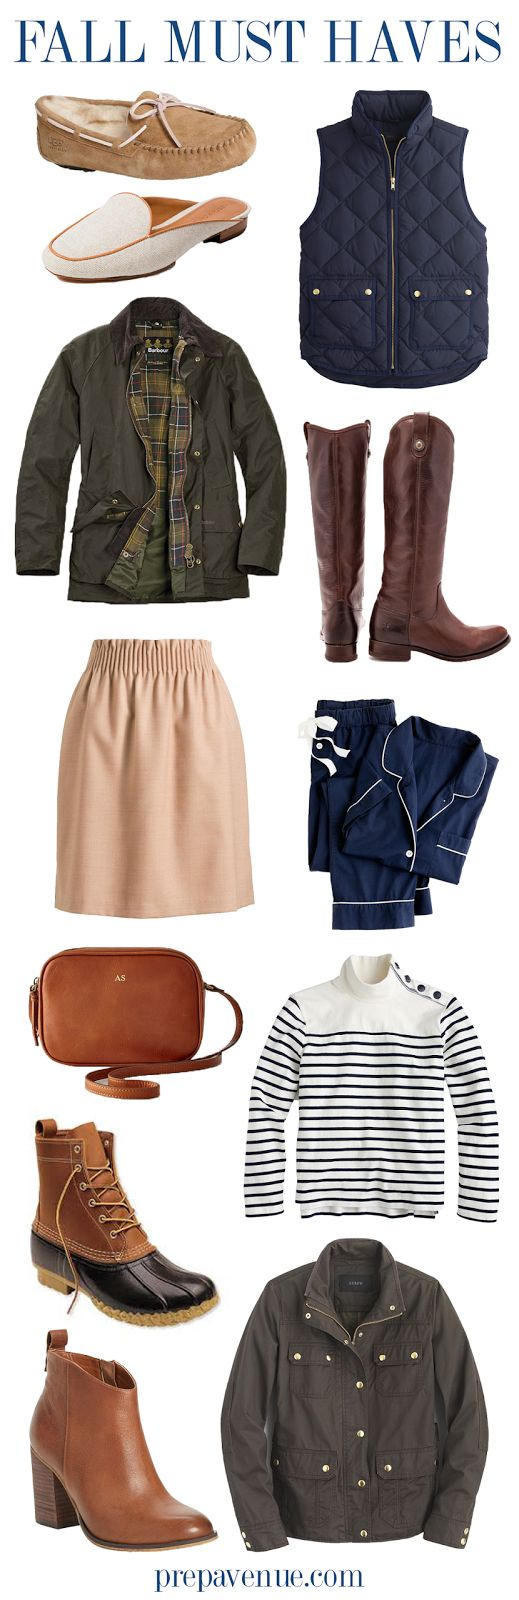 Fall Must Haves // www.prepavenue.com  fall, autumn, clothes, looks, preppy, prep, southern, south, looks, ootd, outfit, look, looks, pictures, essentials, fashion, college, casual, skirt, shoes, jacket, pants, boots, classic, classy, style, blogger, blog